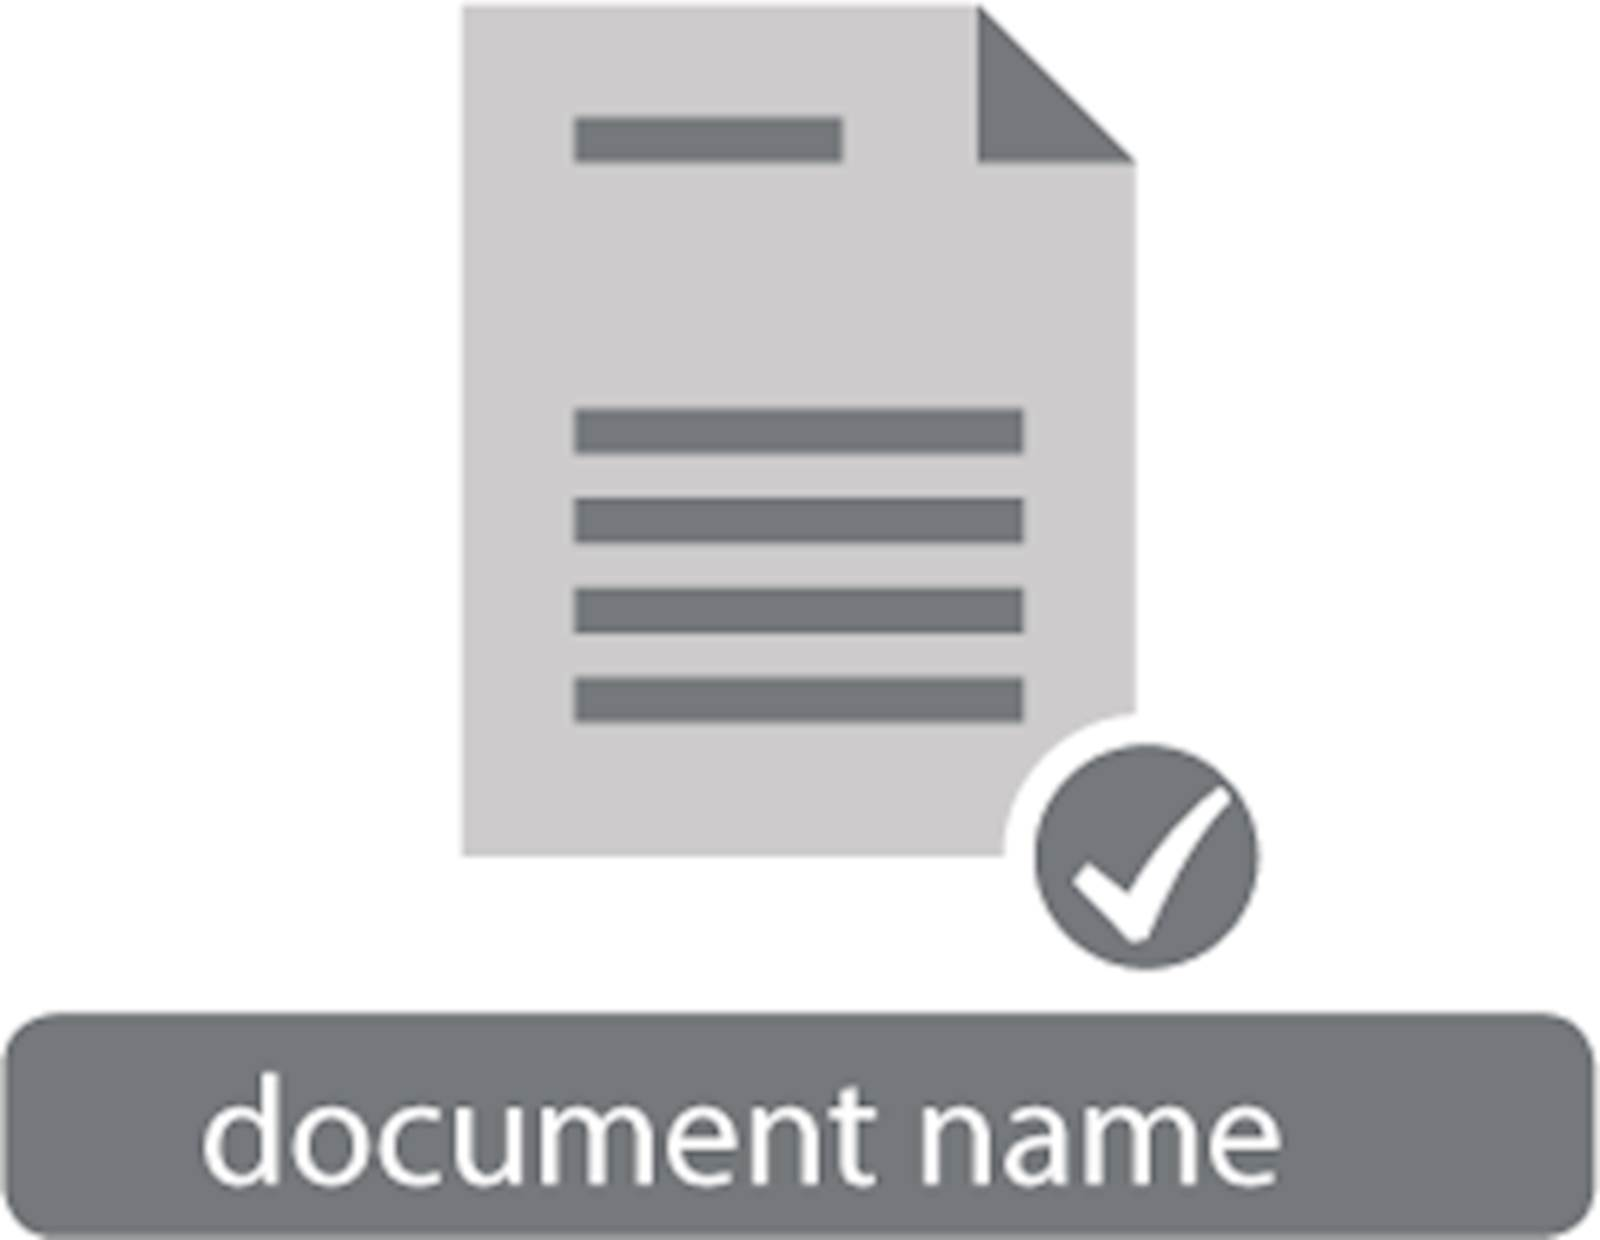 Drivve Image Name your document Graphic